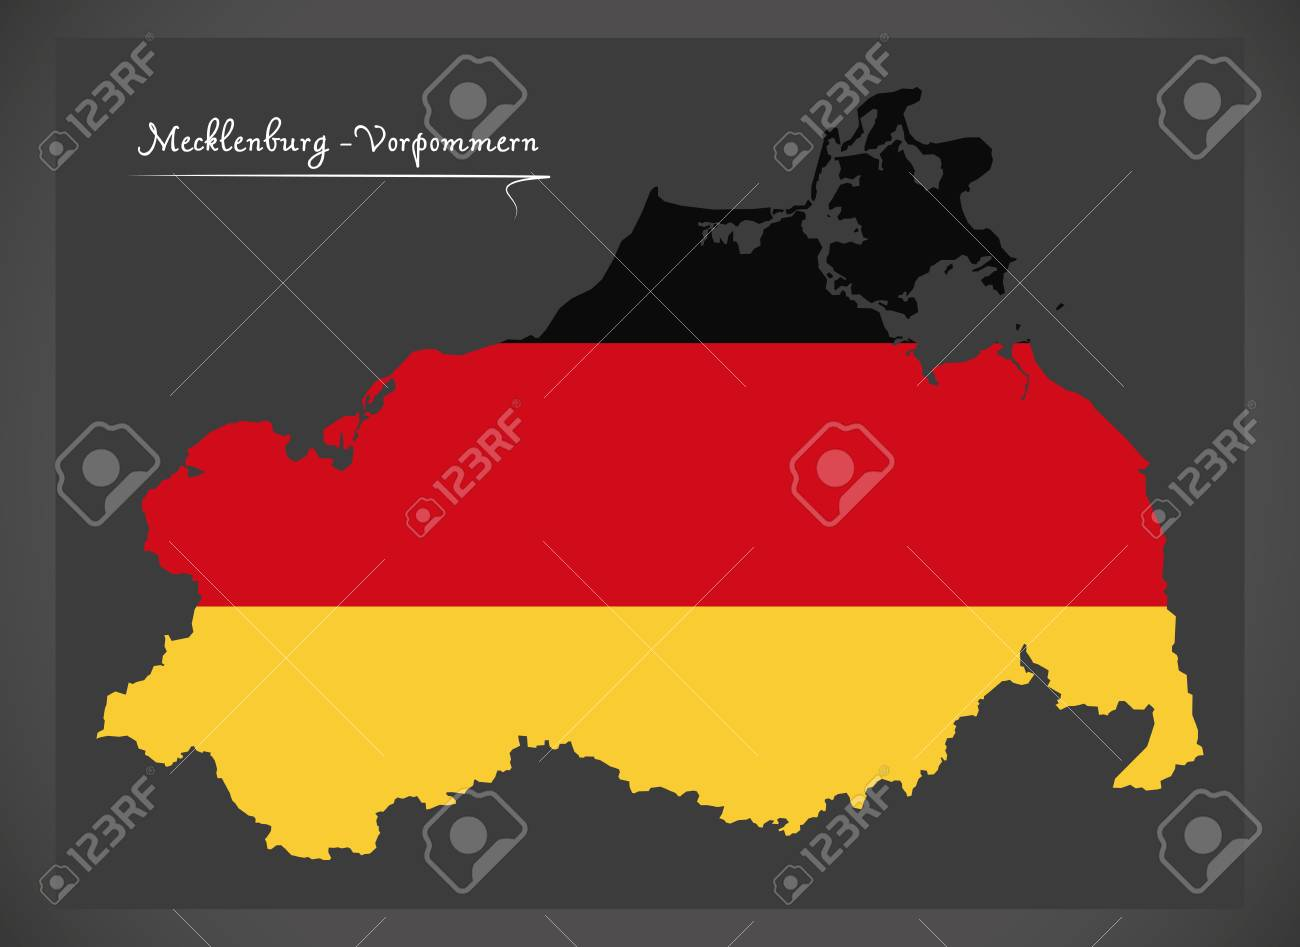 MecklenburgVorpommern Map Of Germany With German National Flag